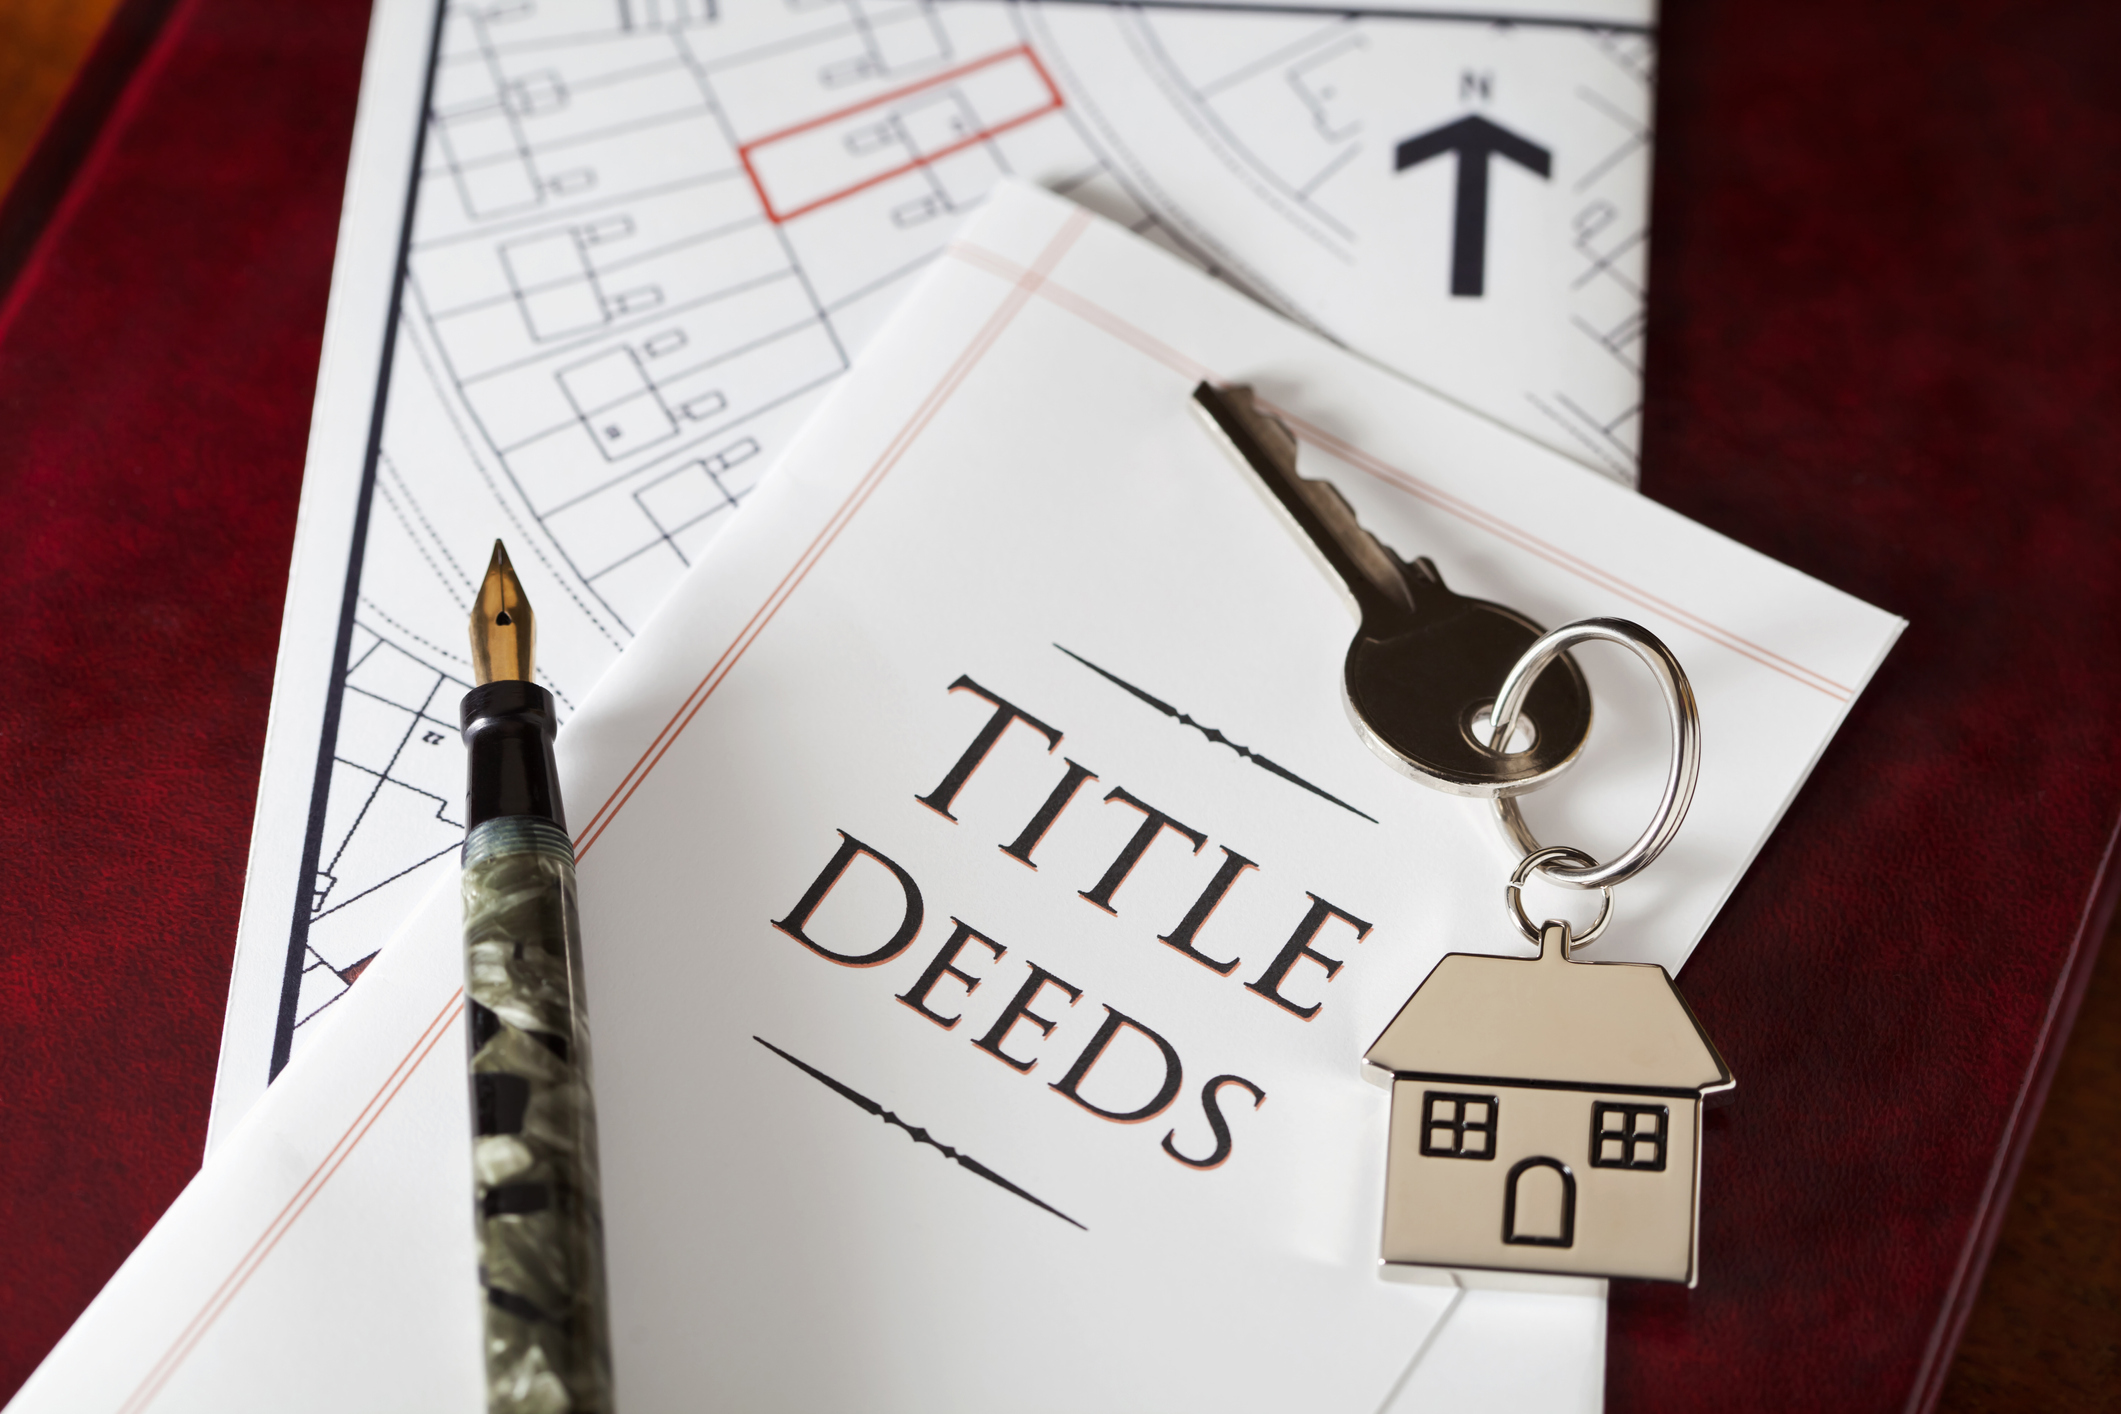 """Title Deeds show the ownership in addition to rights, obligations or mortgages on the property at the time of sale, purchase or transfer. This process is part of the conveyancing process."""